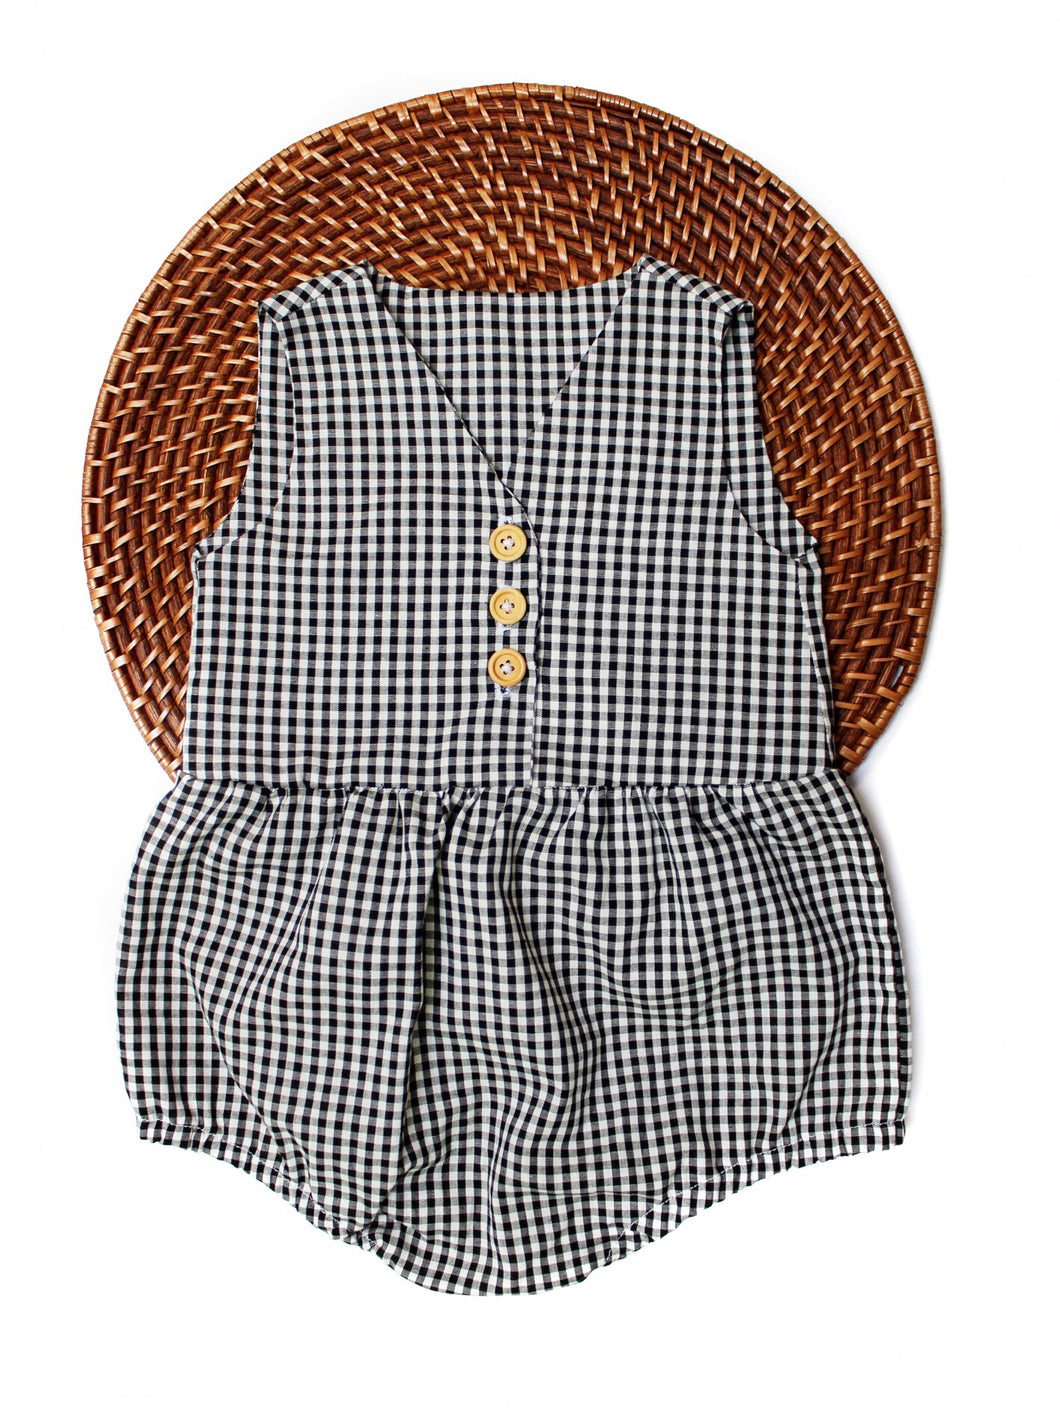 The Lee Romper - Black and White Gingham